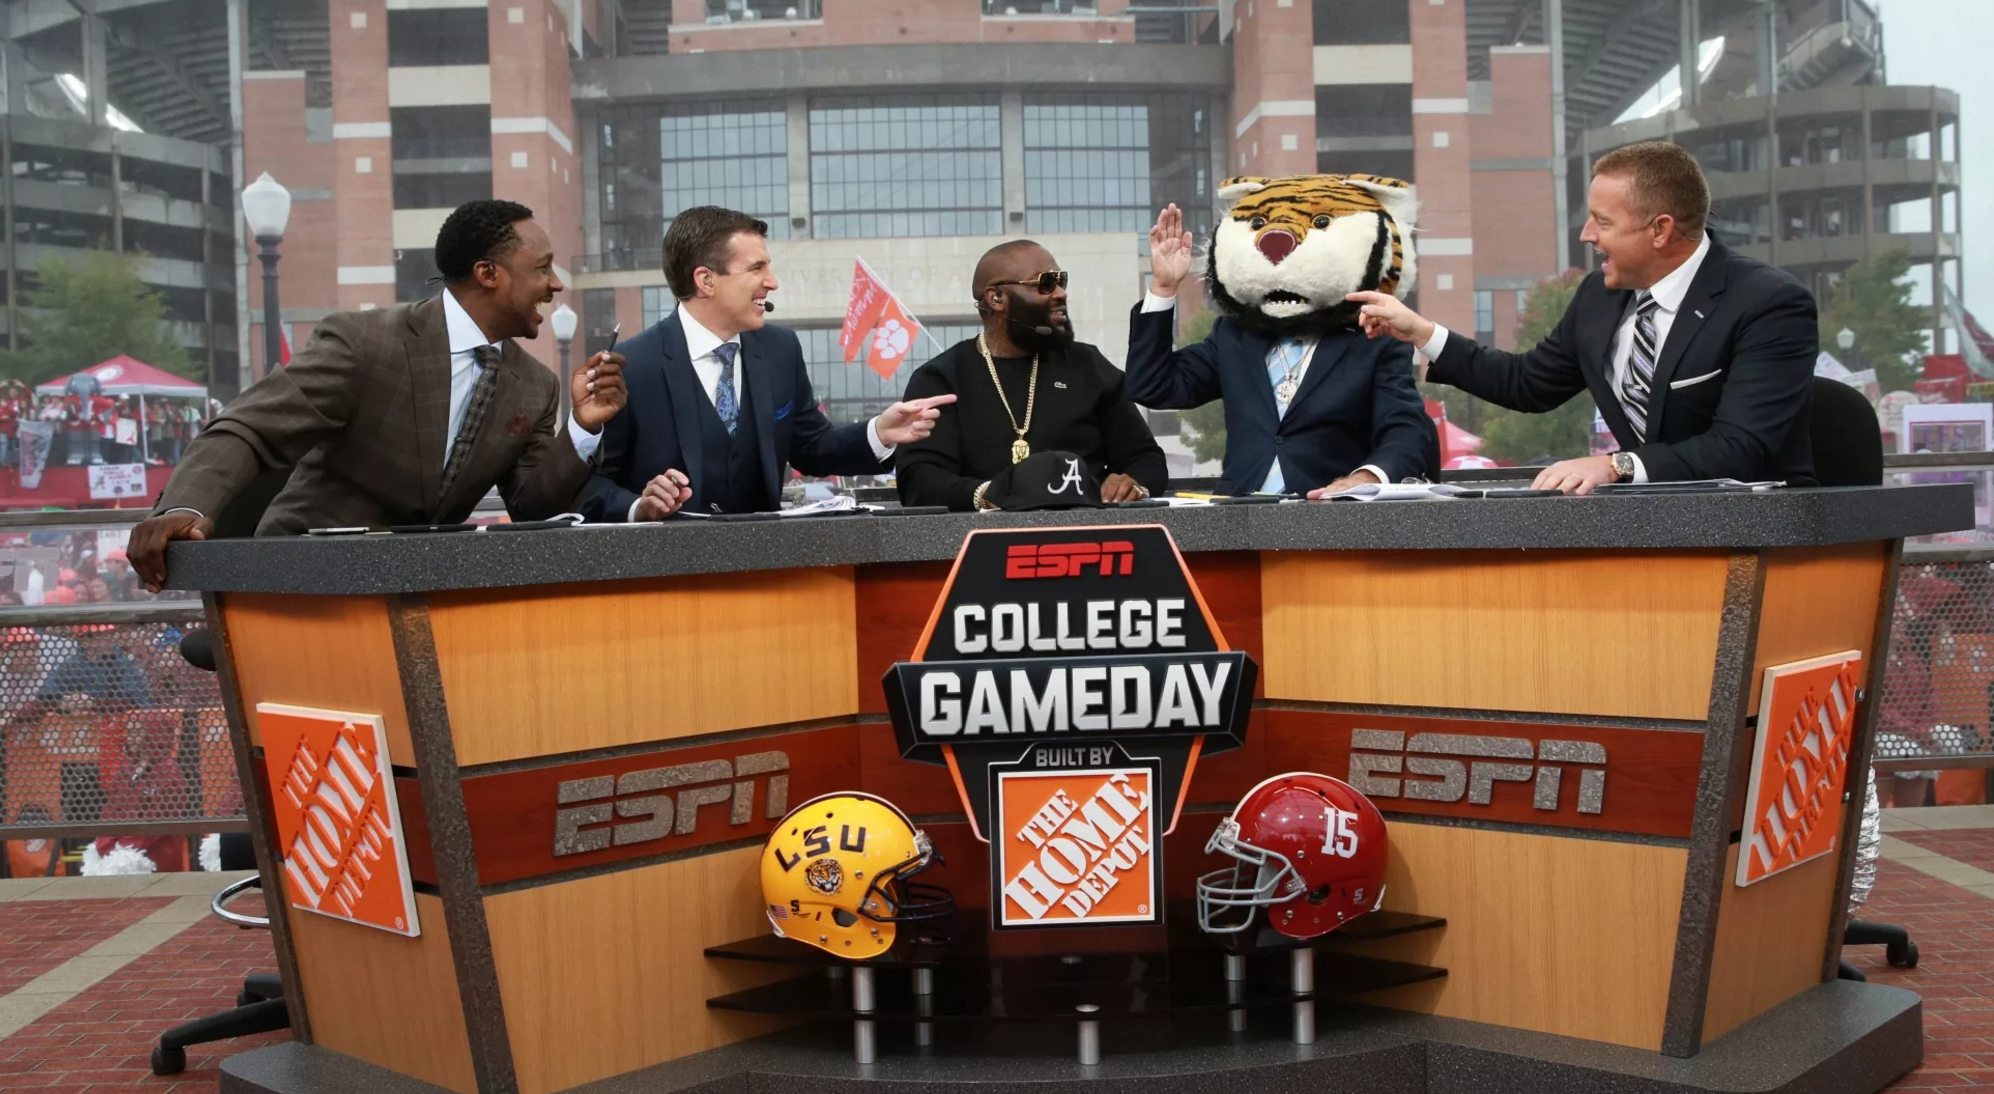 ESPN's College GameDay will be at Lambeau Field for LSU vs Wisconsin, says Kirk Herbstreet.